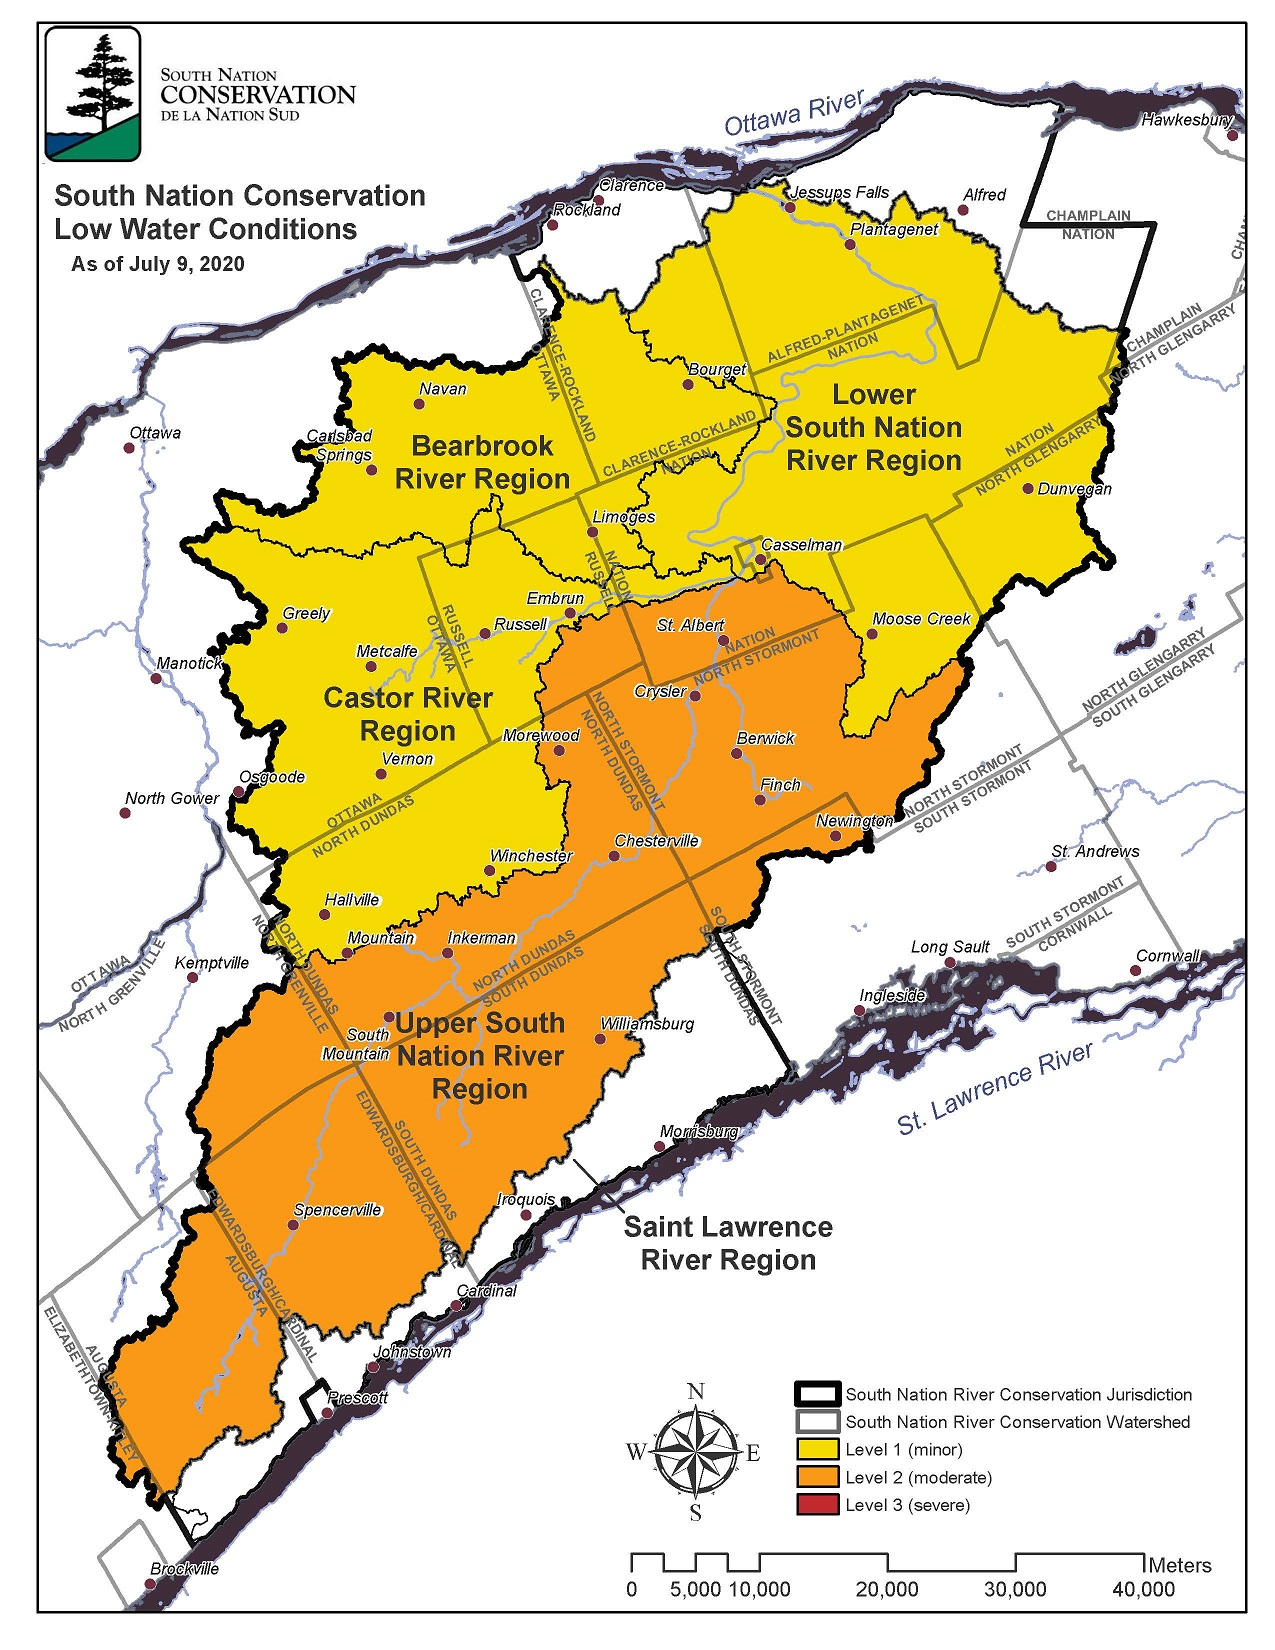 South nation conservation authority low water conditions map as of July 9, 2020.